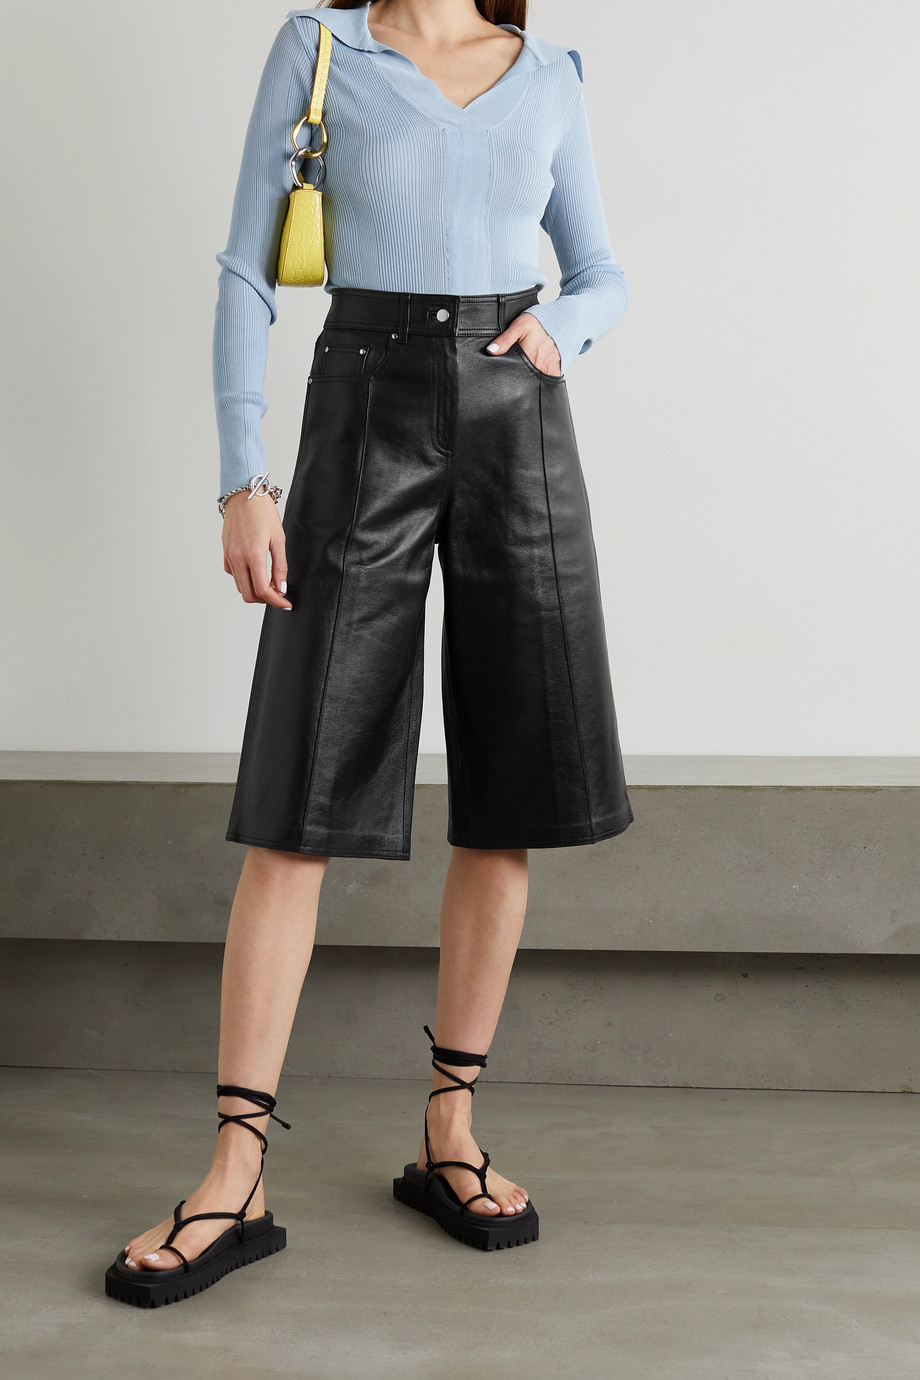 STAND STUDIO Fenella leather shorts